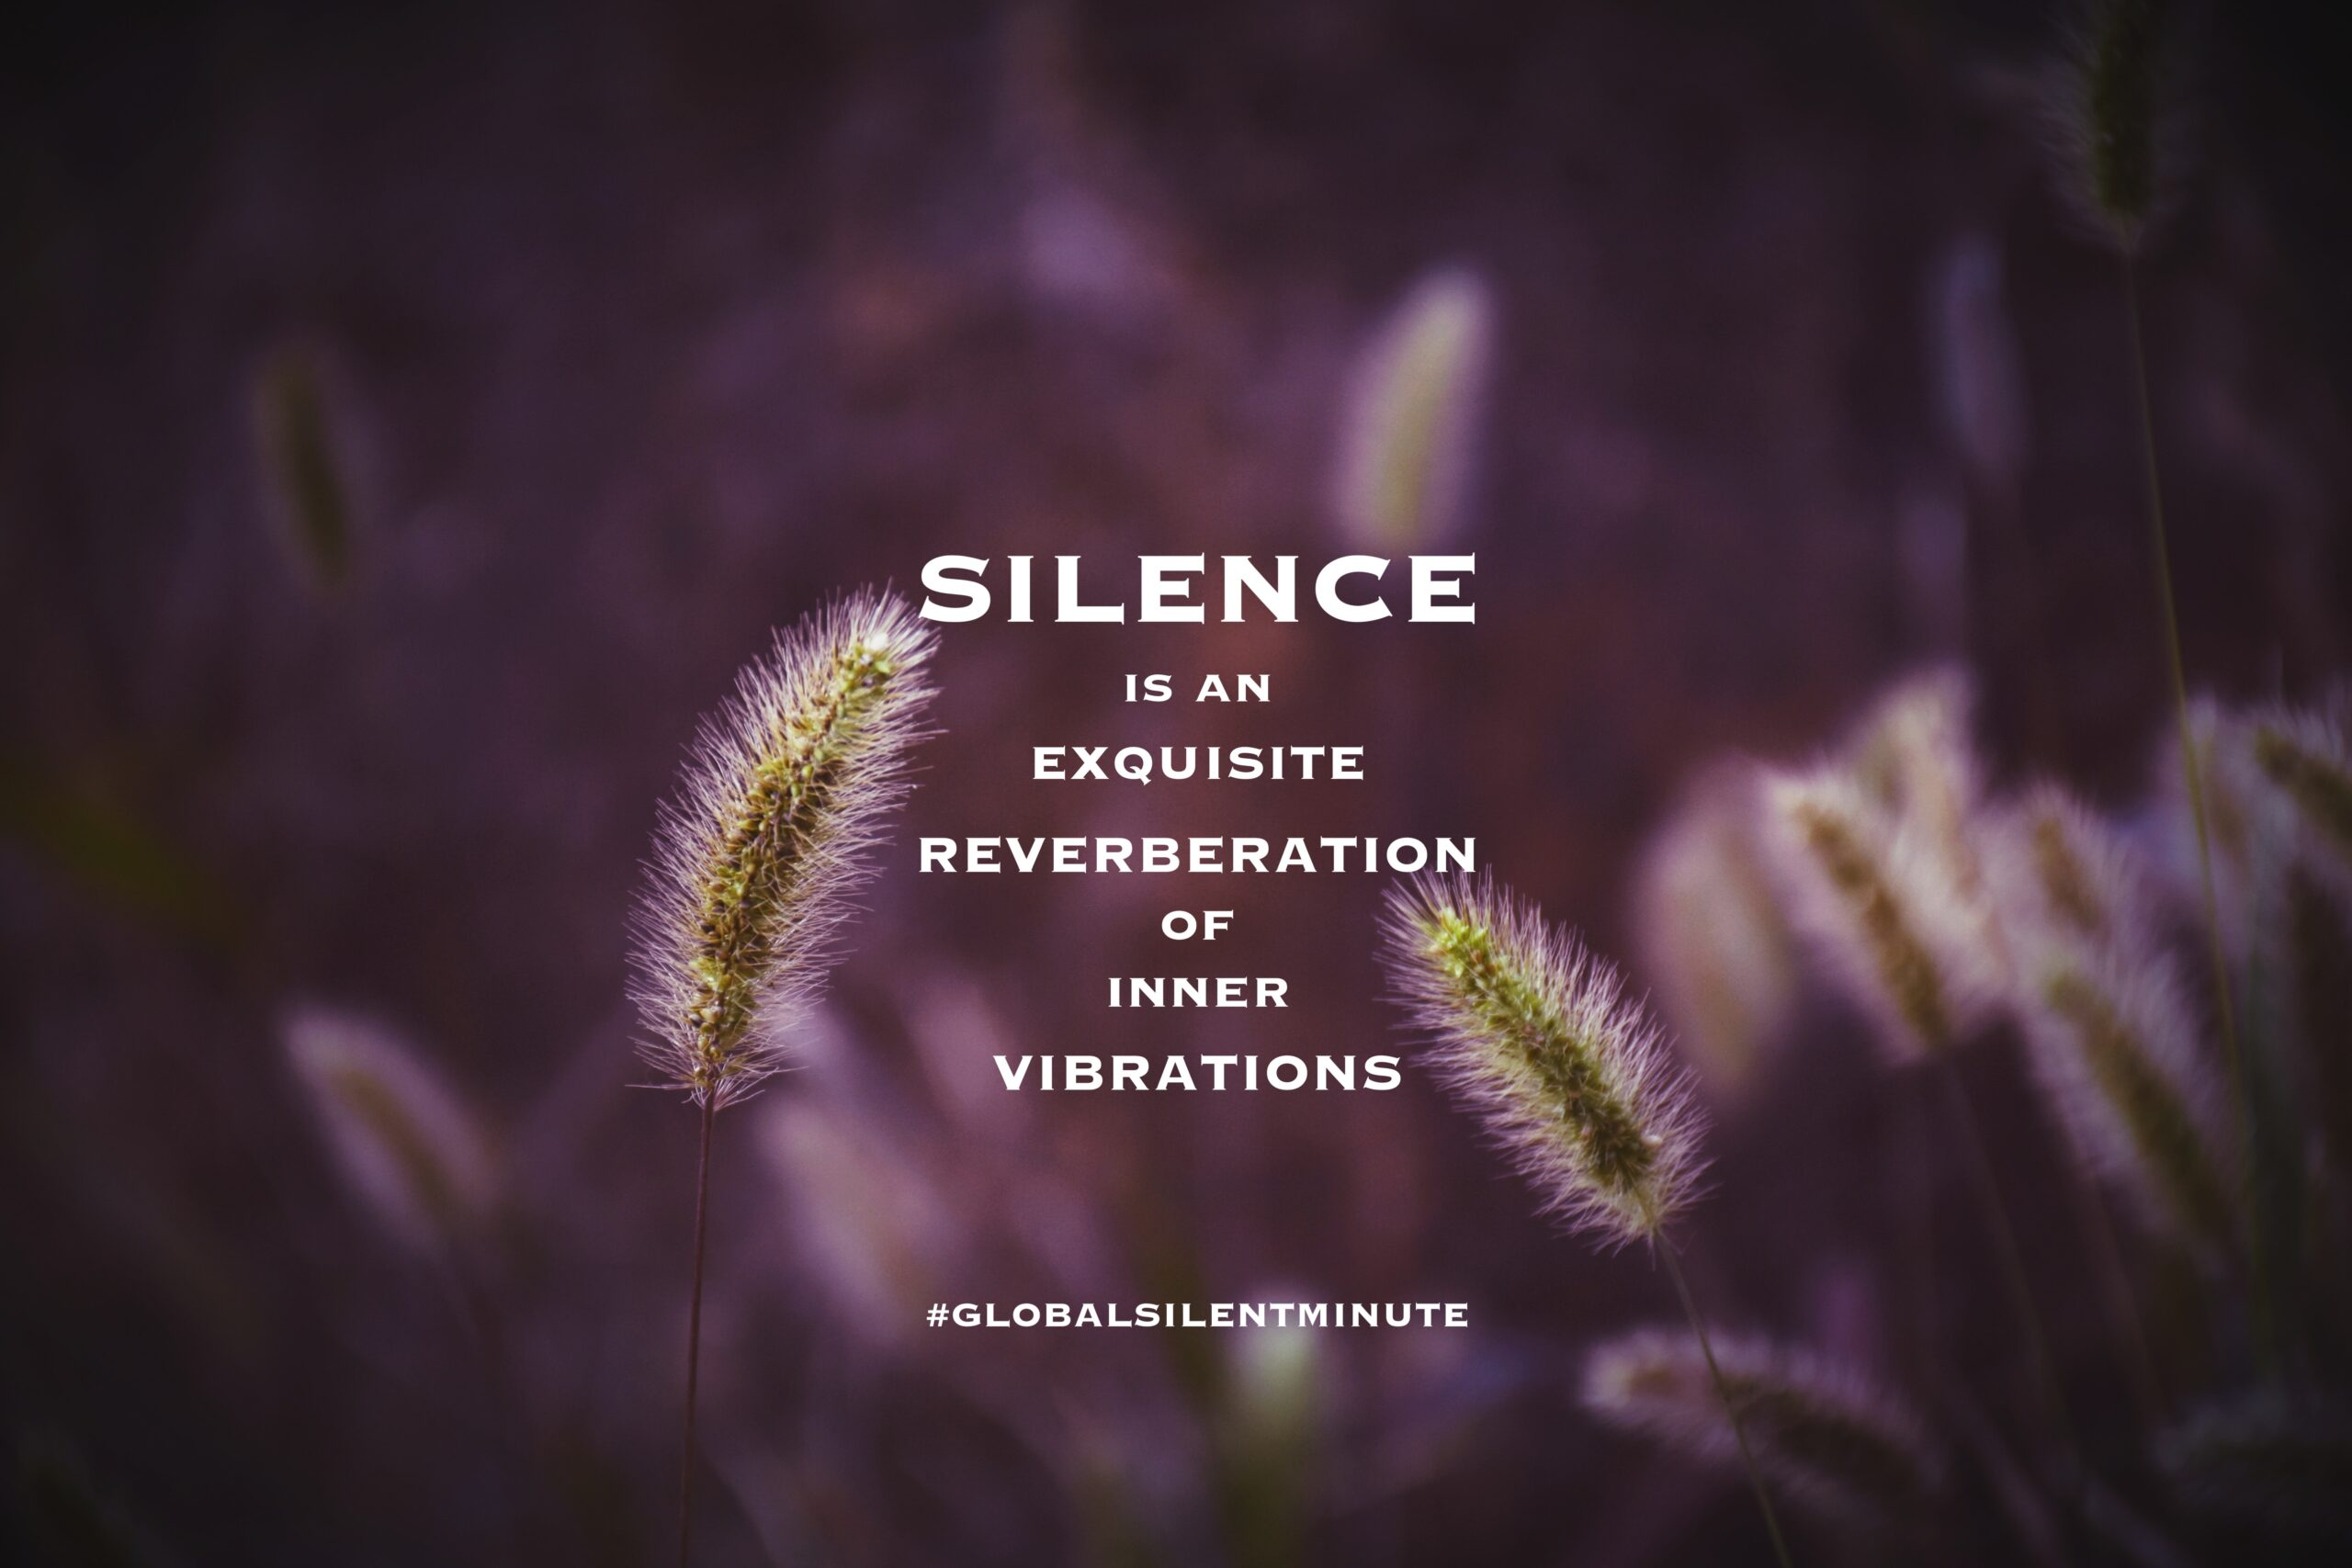 15.Silence is an exquisite reverberation of inner vibrations